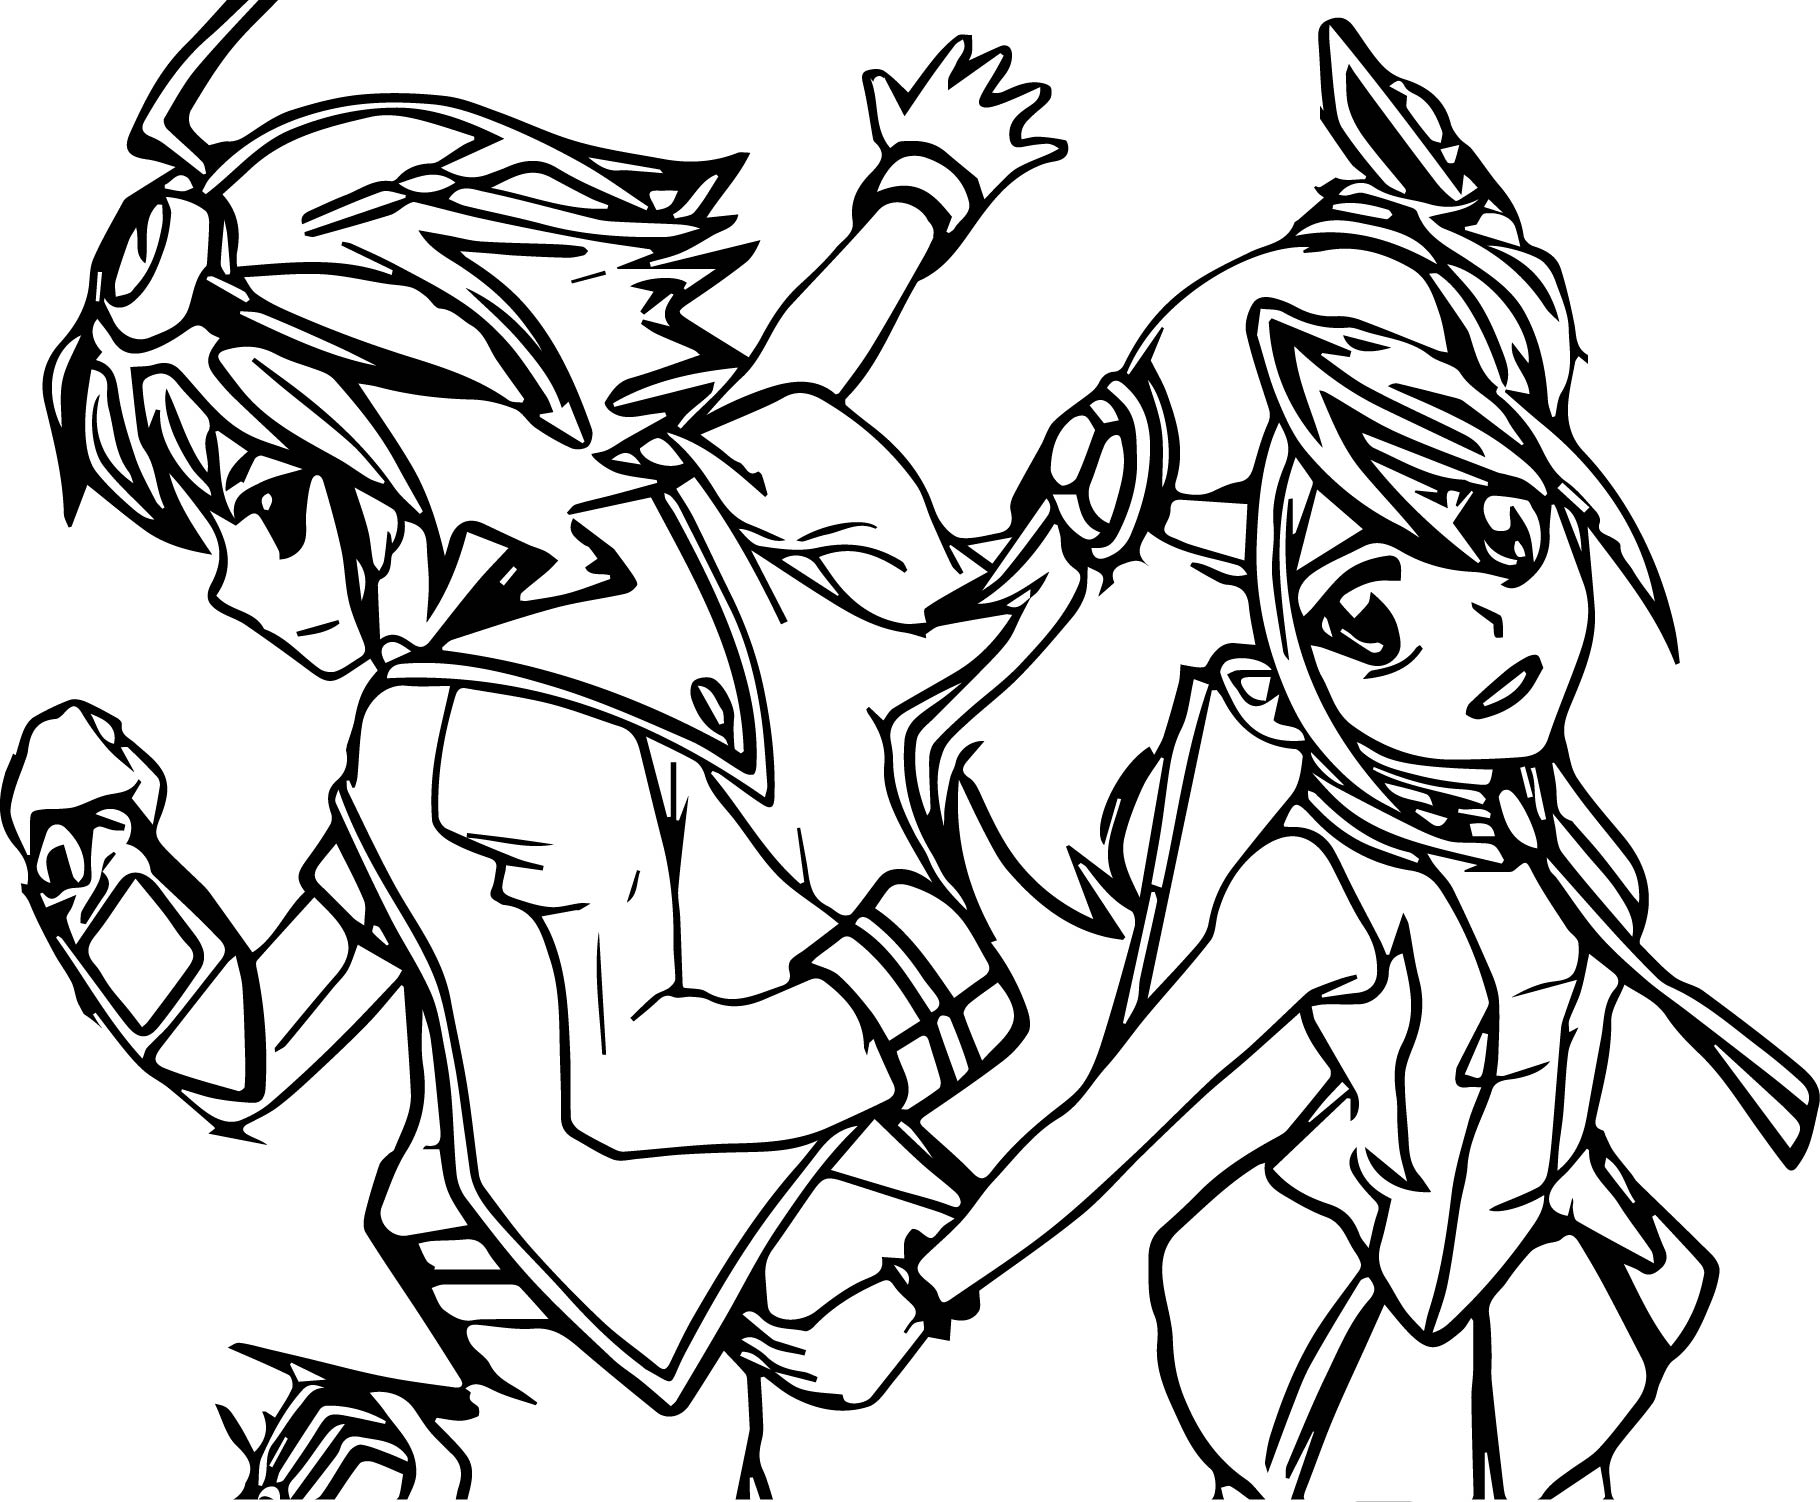 Yu Gi Oh Dance Coloring Page